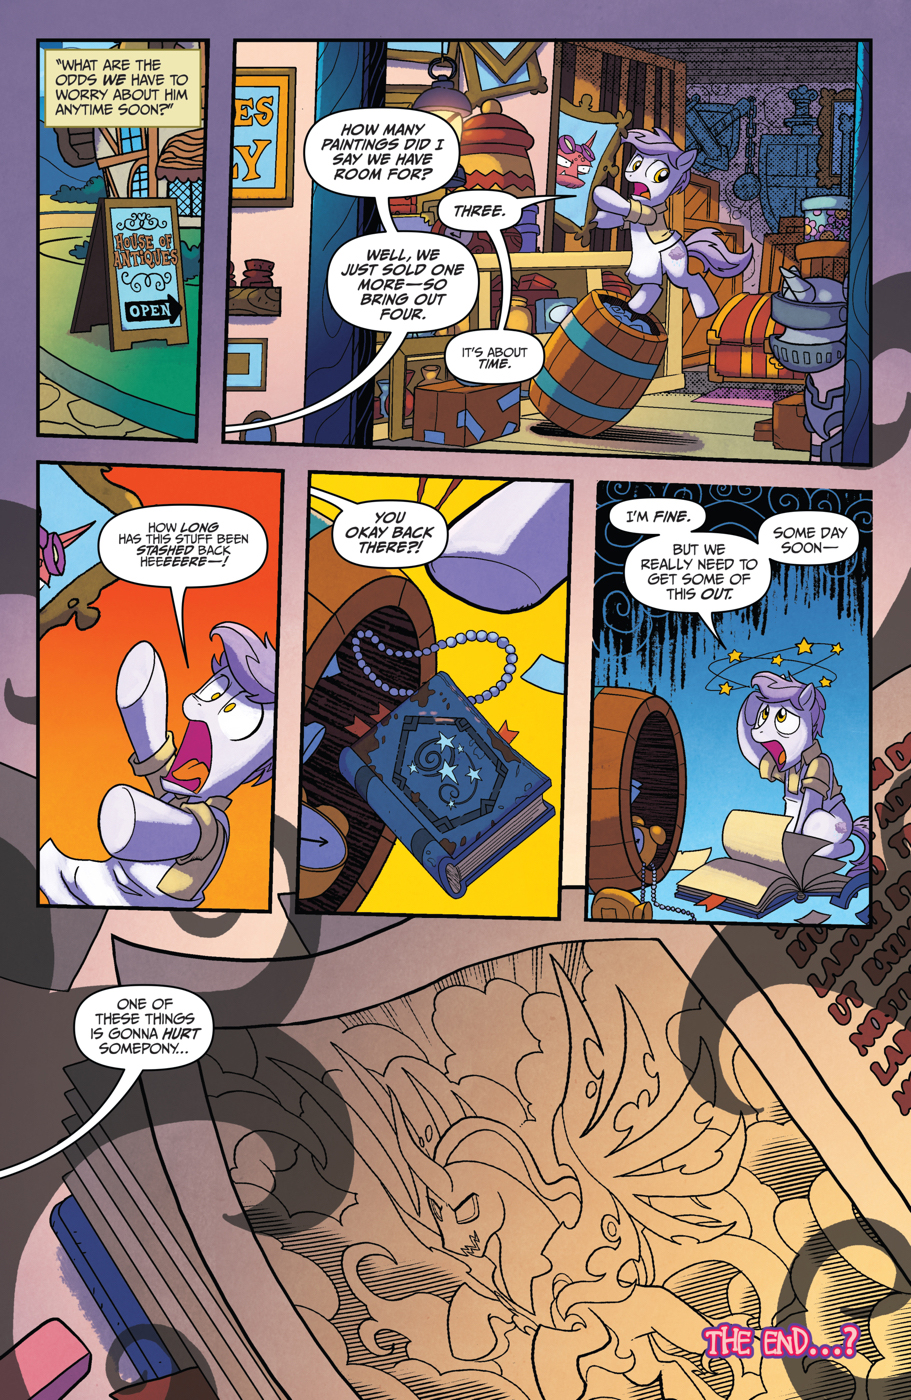 Read online My Little Pony: Friendship is Magic comic -  Issue #53 - 22